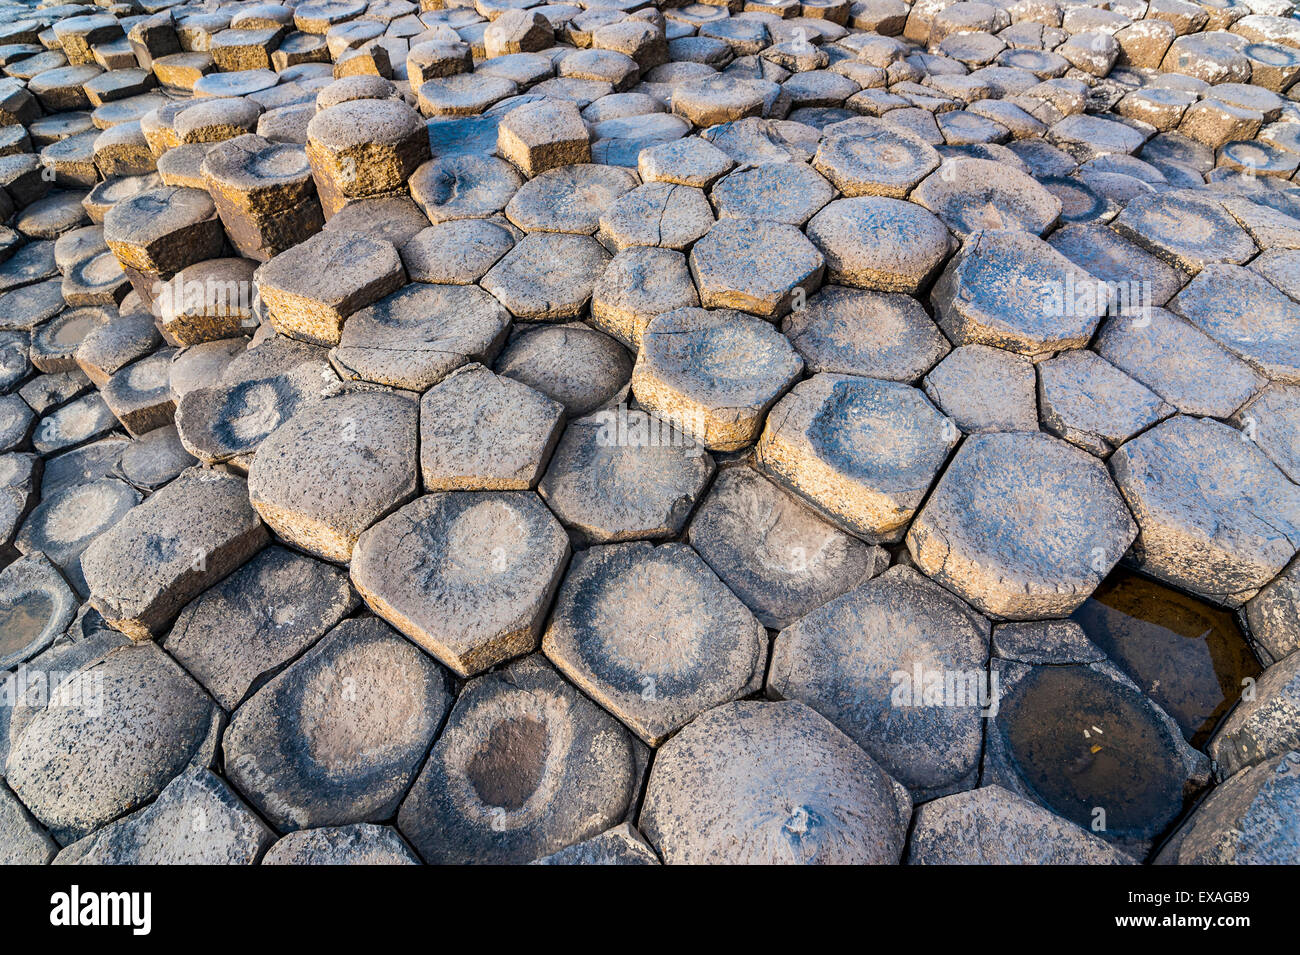 The Giants Causeway, UNESCO World Heritage Site, County Antrim, Ulster, Northern Ireland, United Kingdom, Europe - Stock Image